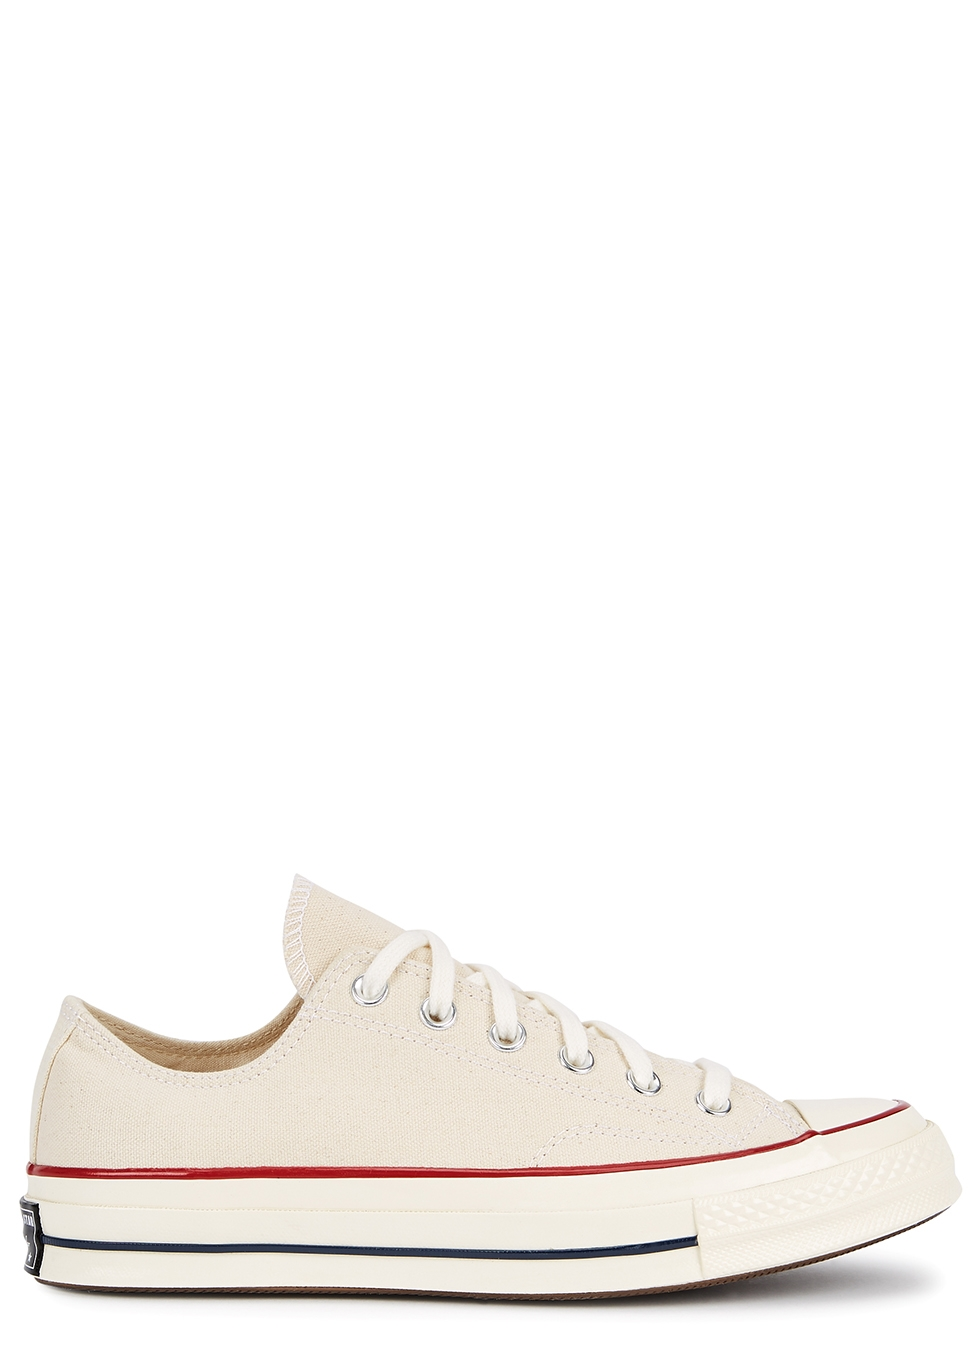 Chuck 70 cream canvas sneakers